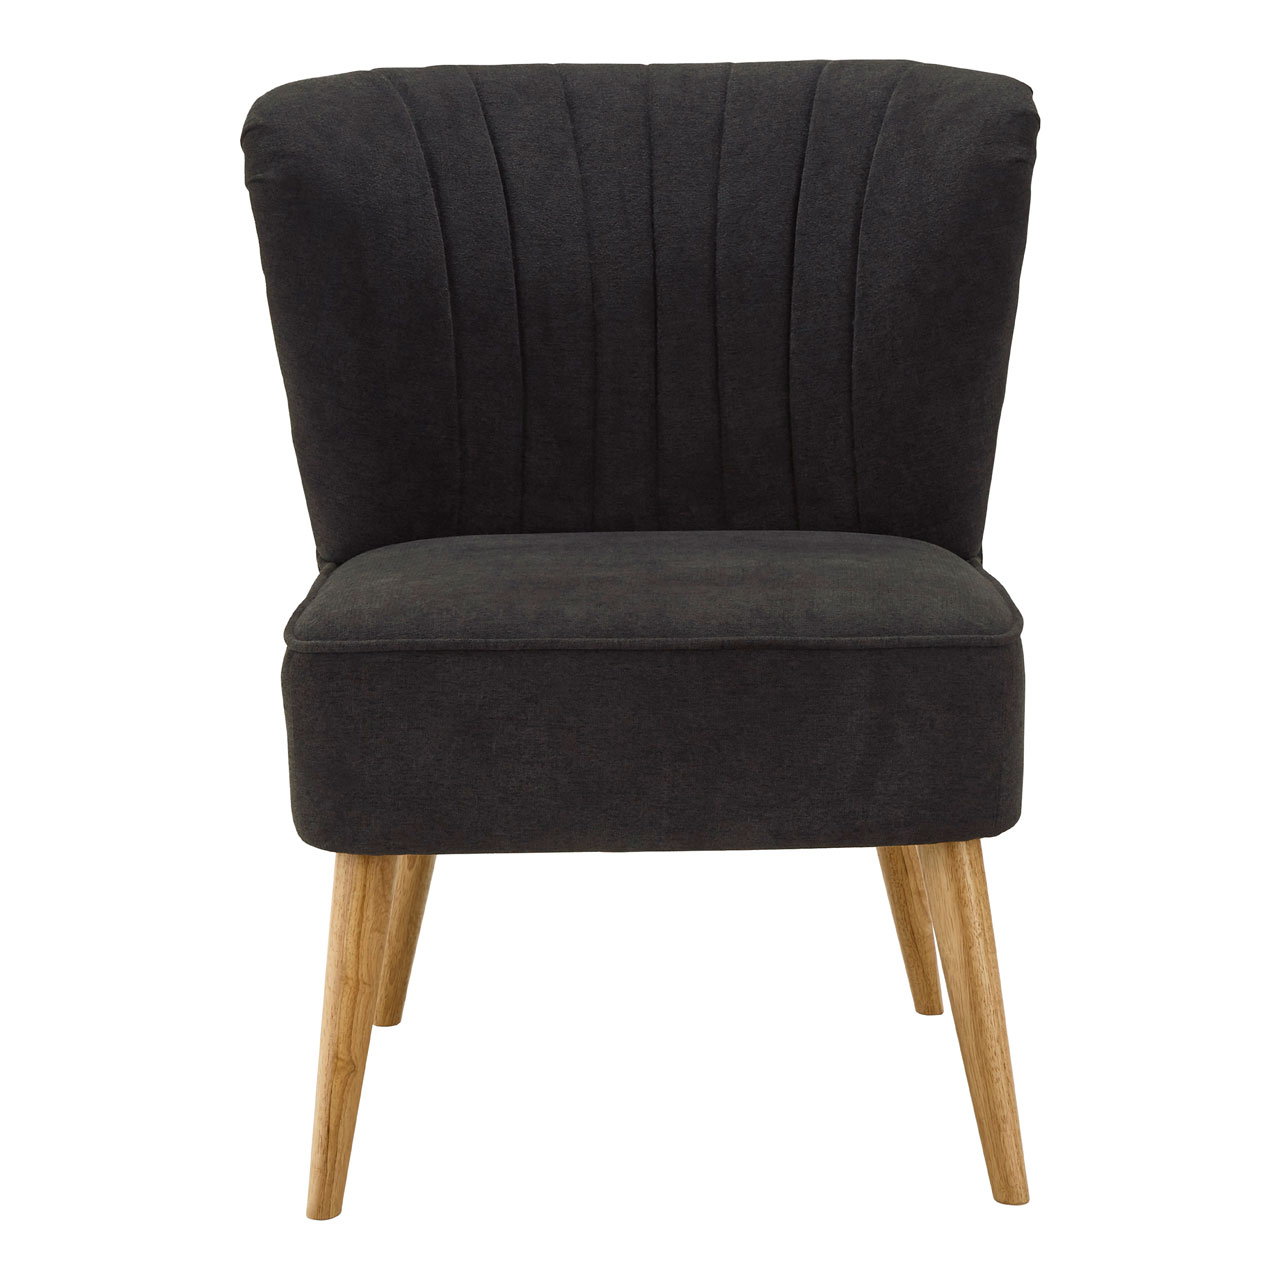 Details About Geneva Wingback Chair Charcoal Chenille Rubberwood Legs